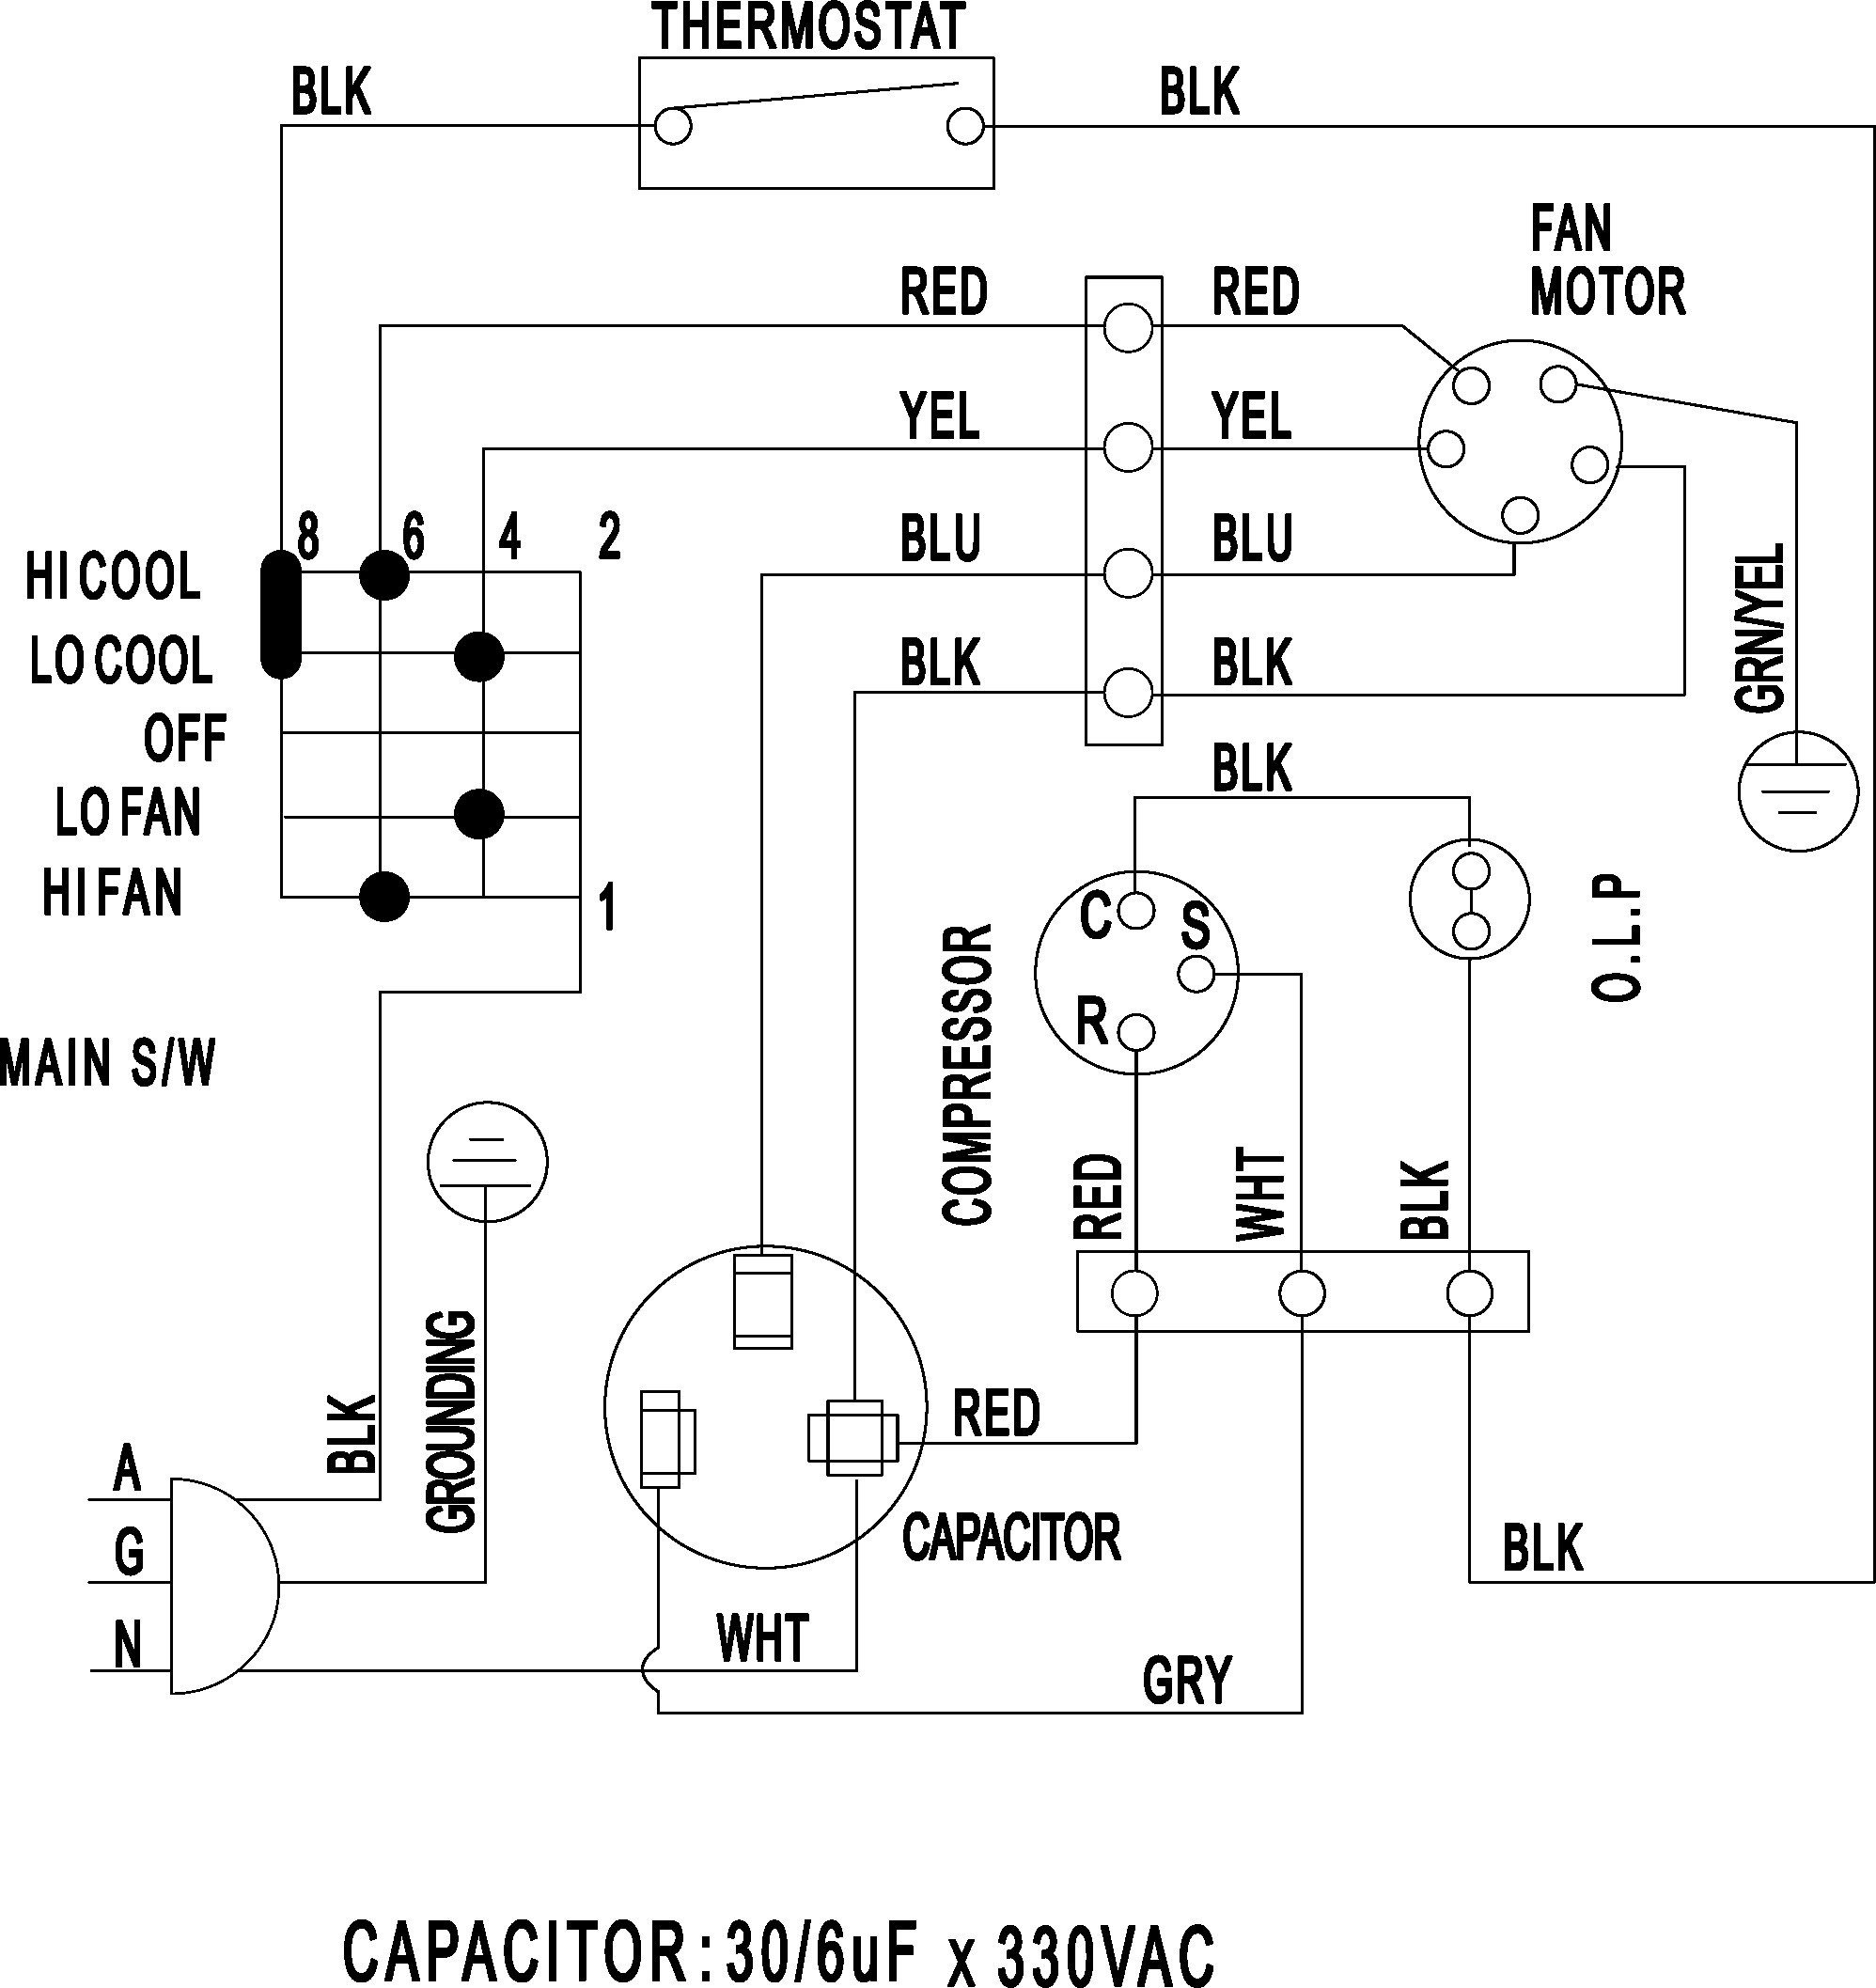 Ac Unit Wiring Diagram - Data Wiring Diagram Today - Ac Unit Wiring Diagram